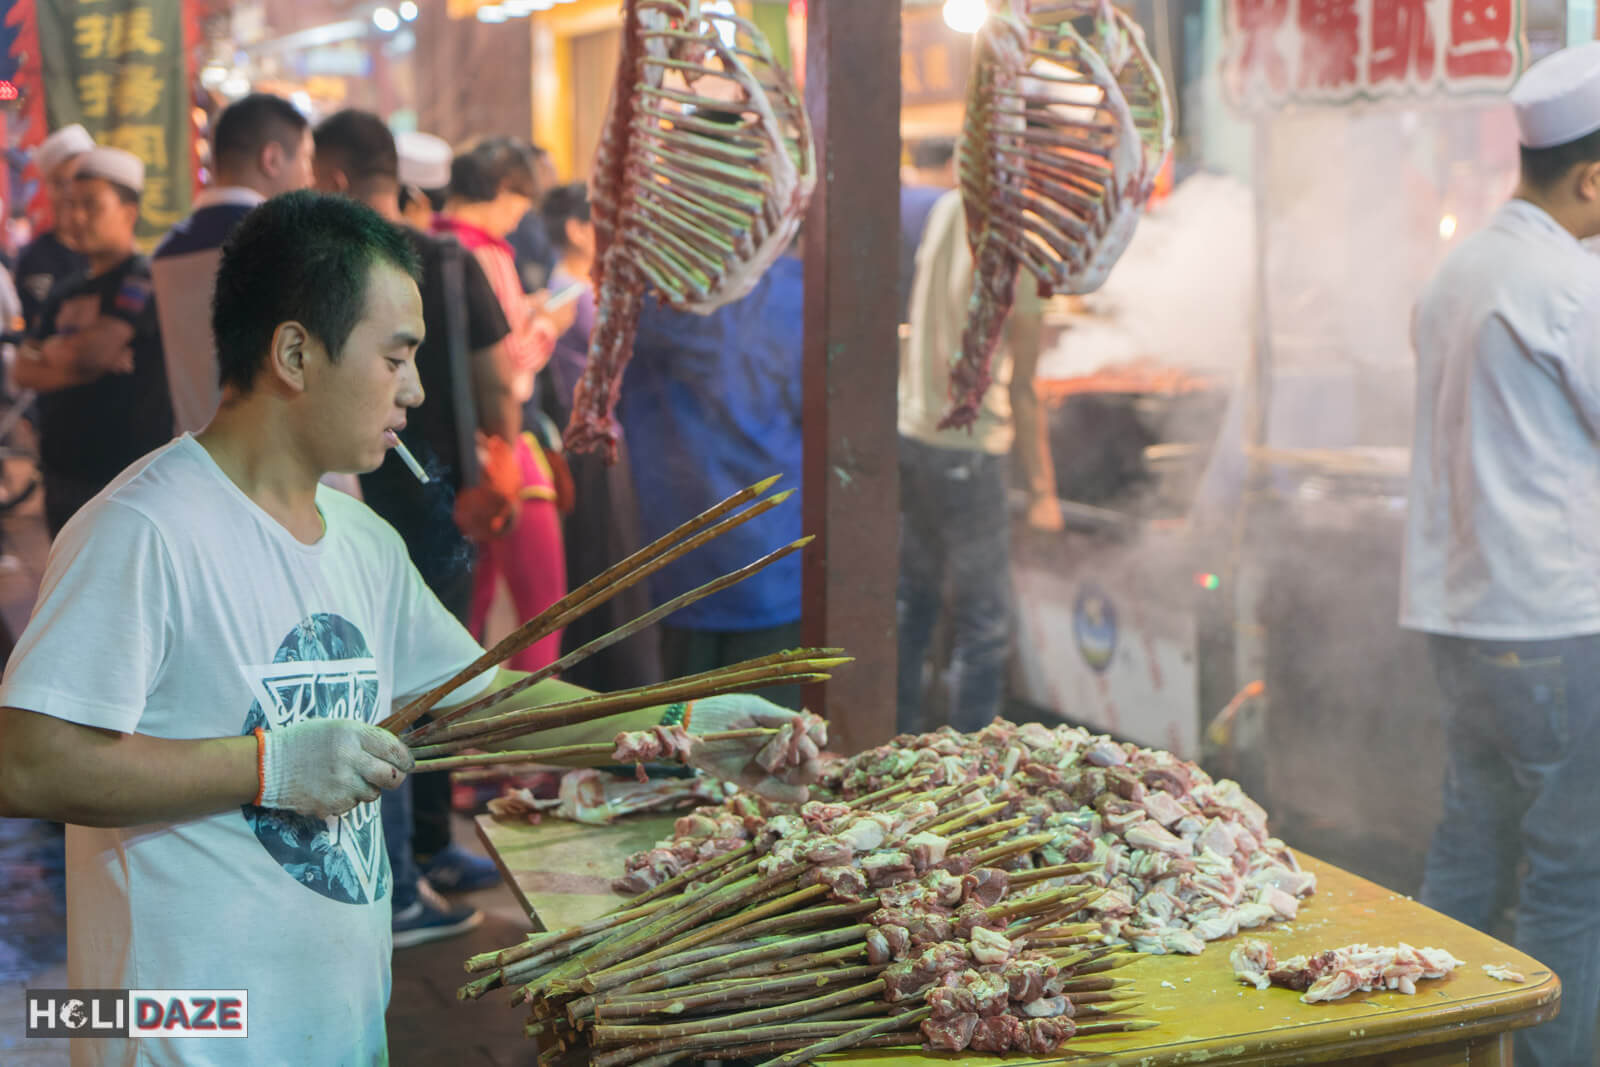 The Muslim Quarter in Xi'an is your go-to place for the best food in town -- and a free show watching the people prepare it